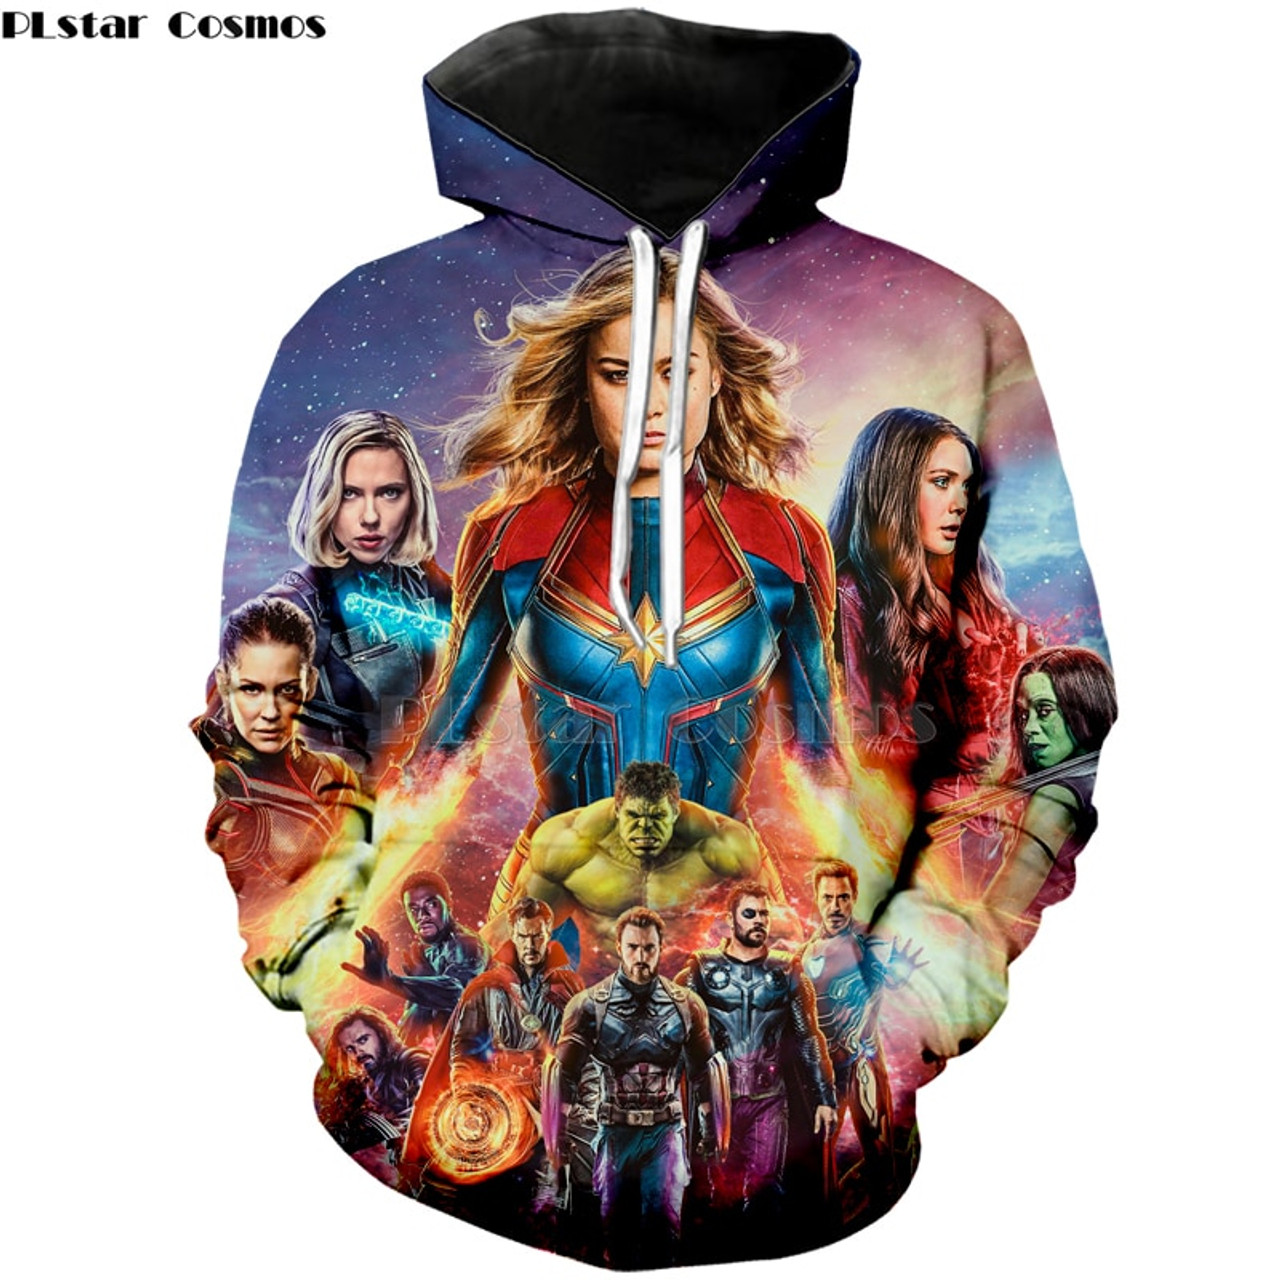 **(ALL-NEW-AVENGERS-ENDGAME-MOVIE/TRENDY-3D-CUSTOM-PULLOVER-HOODIES/ALL-THE-AVENGERS-ENDGAME-MOVIE-CAST & CHARACTERS/3D-CUSTOM-GRAPHIC-PRINTED & DOUBLE-SIDED-DESIGN-PRINTING/PREMIUM-PULLOVER-DEEP-POCKET-HOODIES)**